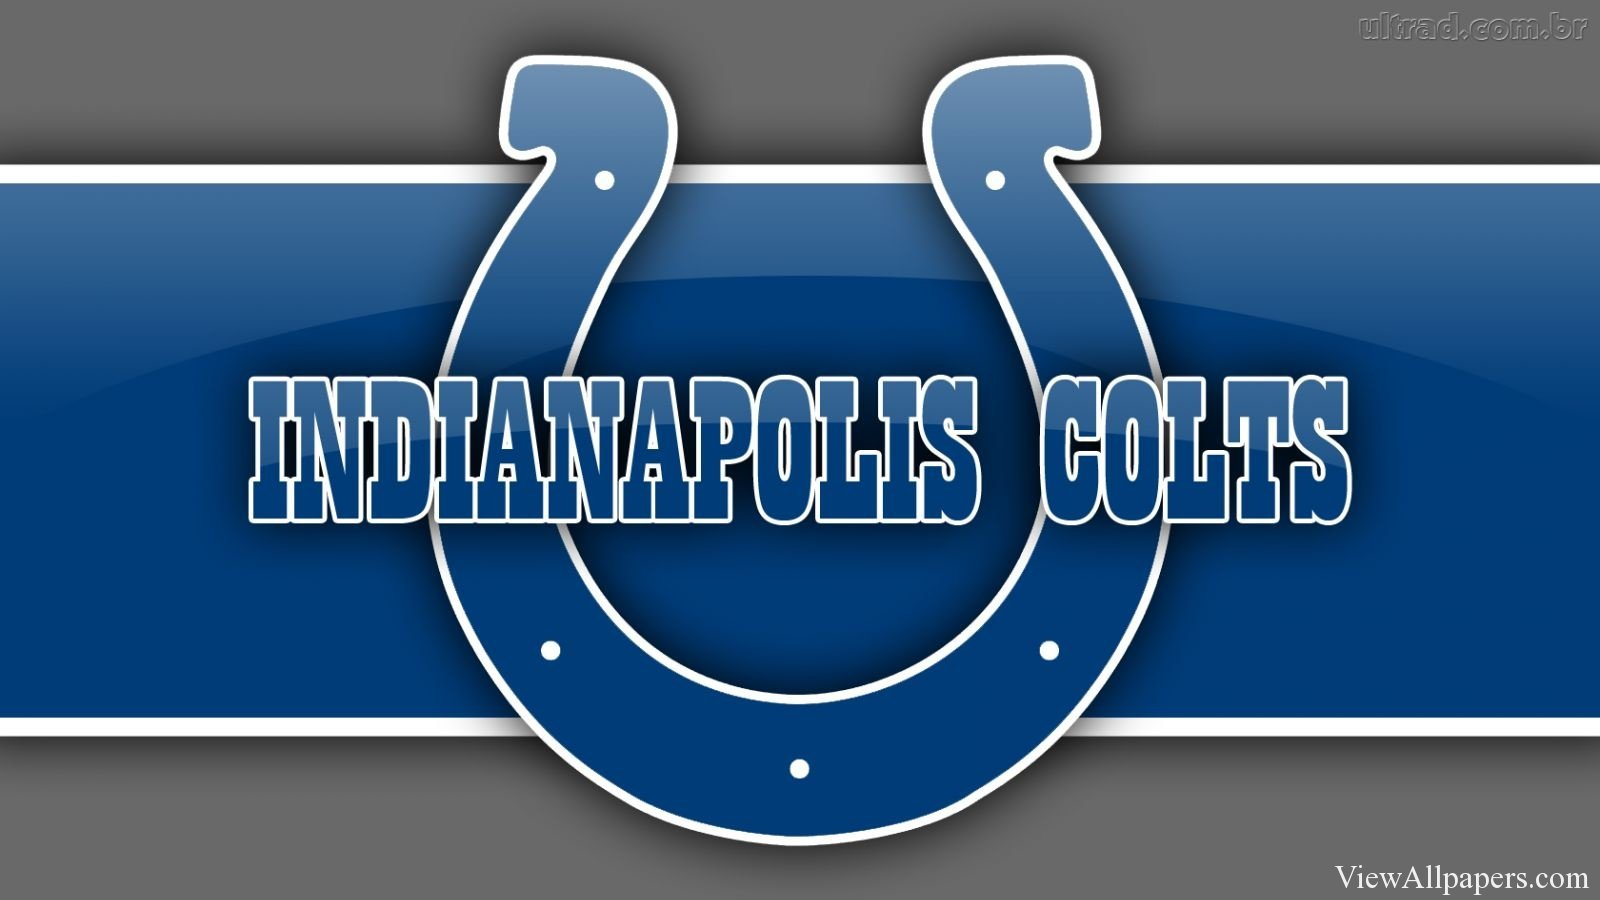 Colts Logo HD Resolution Wallpaper, Free download Indianapolis Colts ...